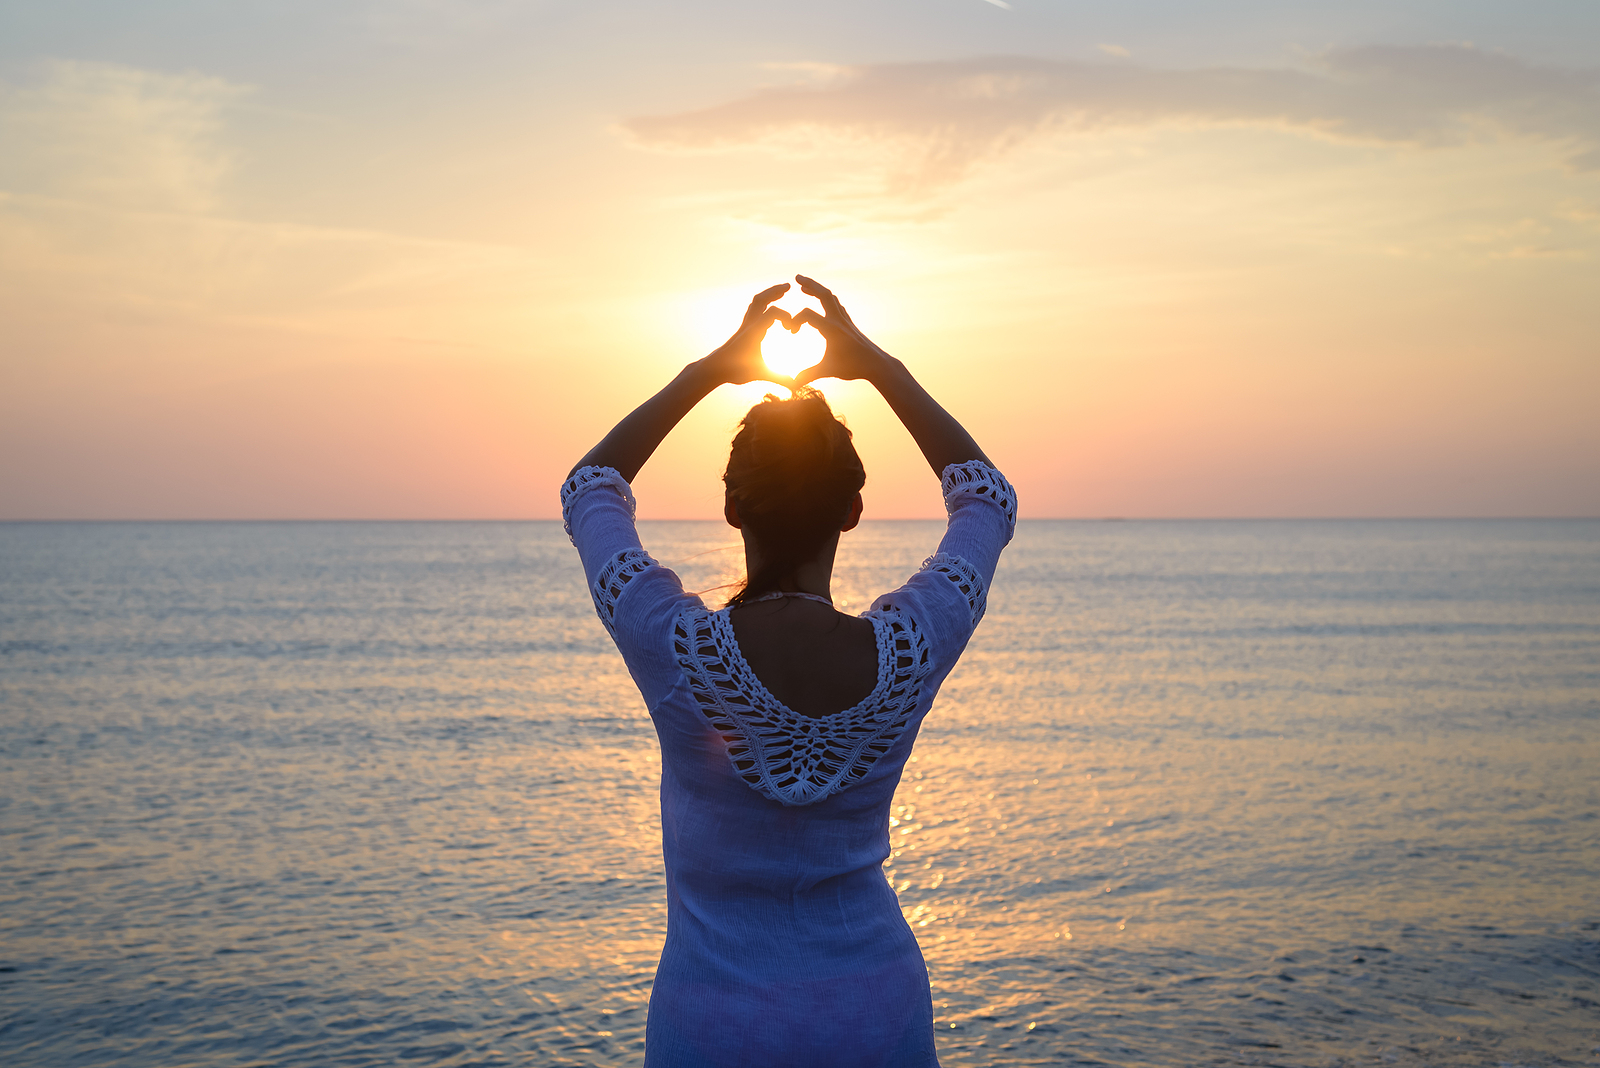 Woman at the beach holds her hands above her head in a heart shape. Shining between her hands, the sun can be seen setting over the water. This symbolizes the peace people feel after dealing with grief. We offer grief counseling in West Bloomfield, MI. If you're going through the stages of grief, contact a grief counselor for support!